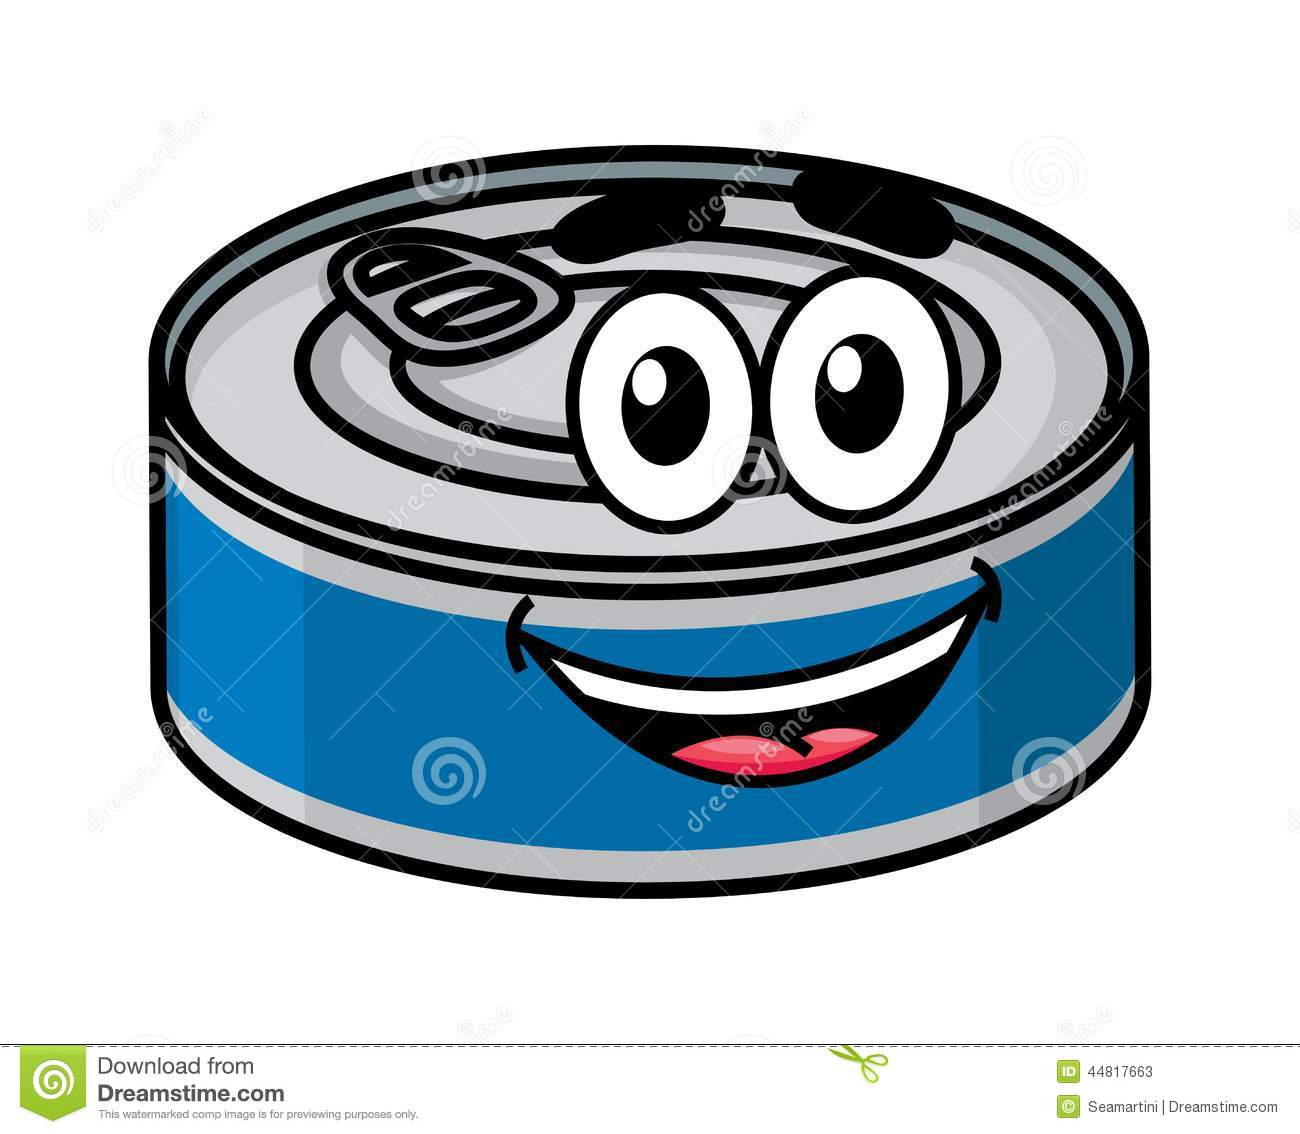 Cartoon happy cute tin can character isolated on white background.